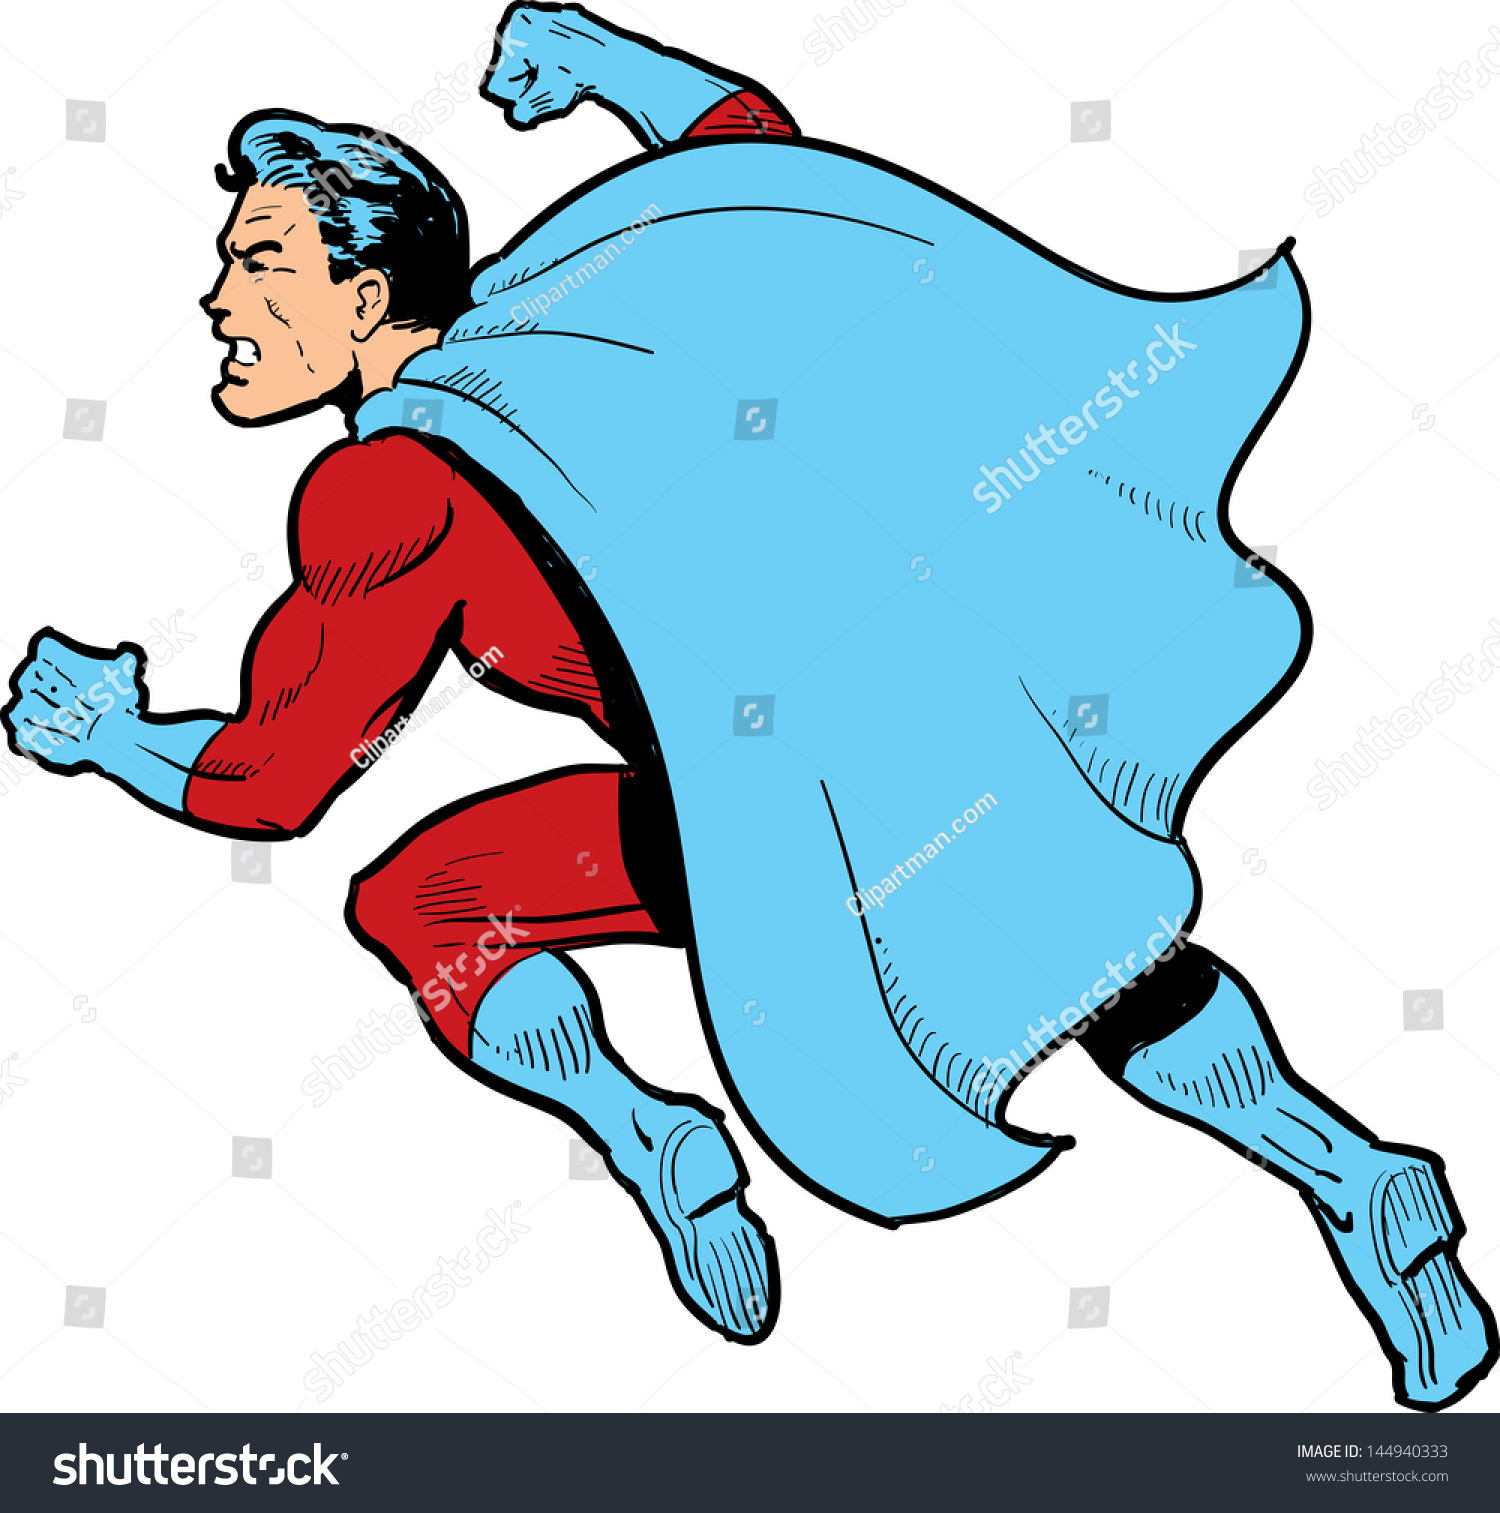 classic superhero cape fighting throwing punch stock illustration rh shutterstock com superhero cape clipart black and white